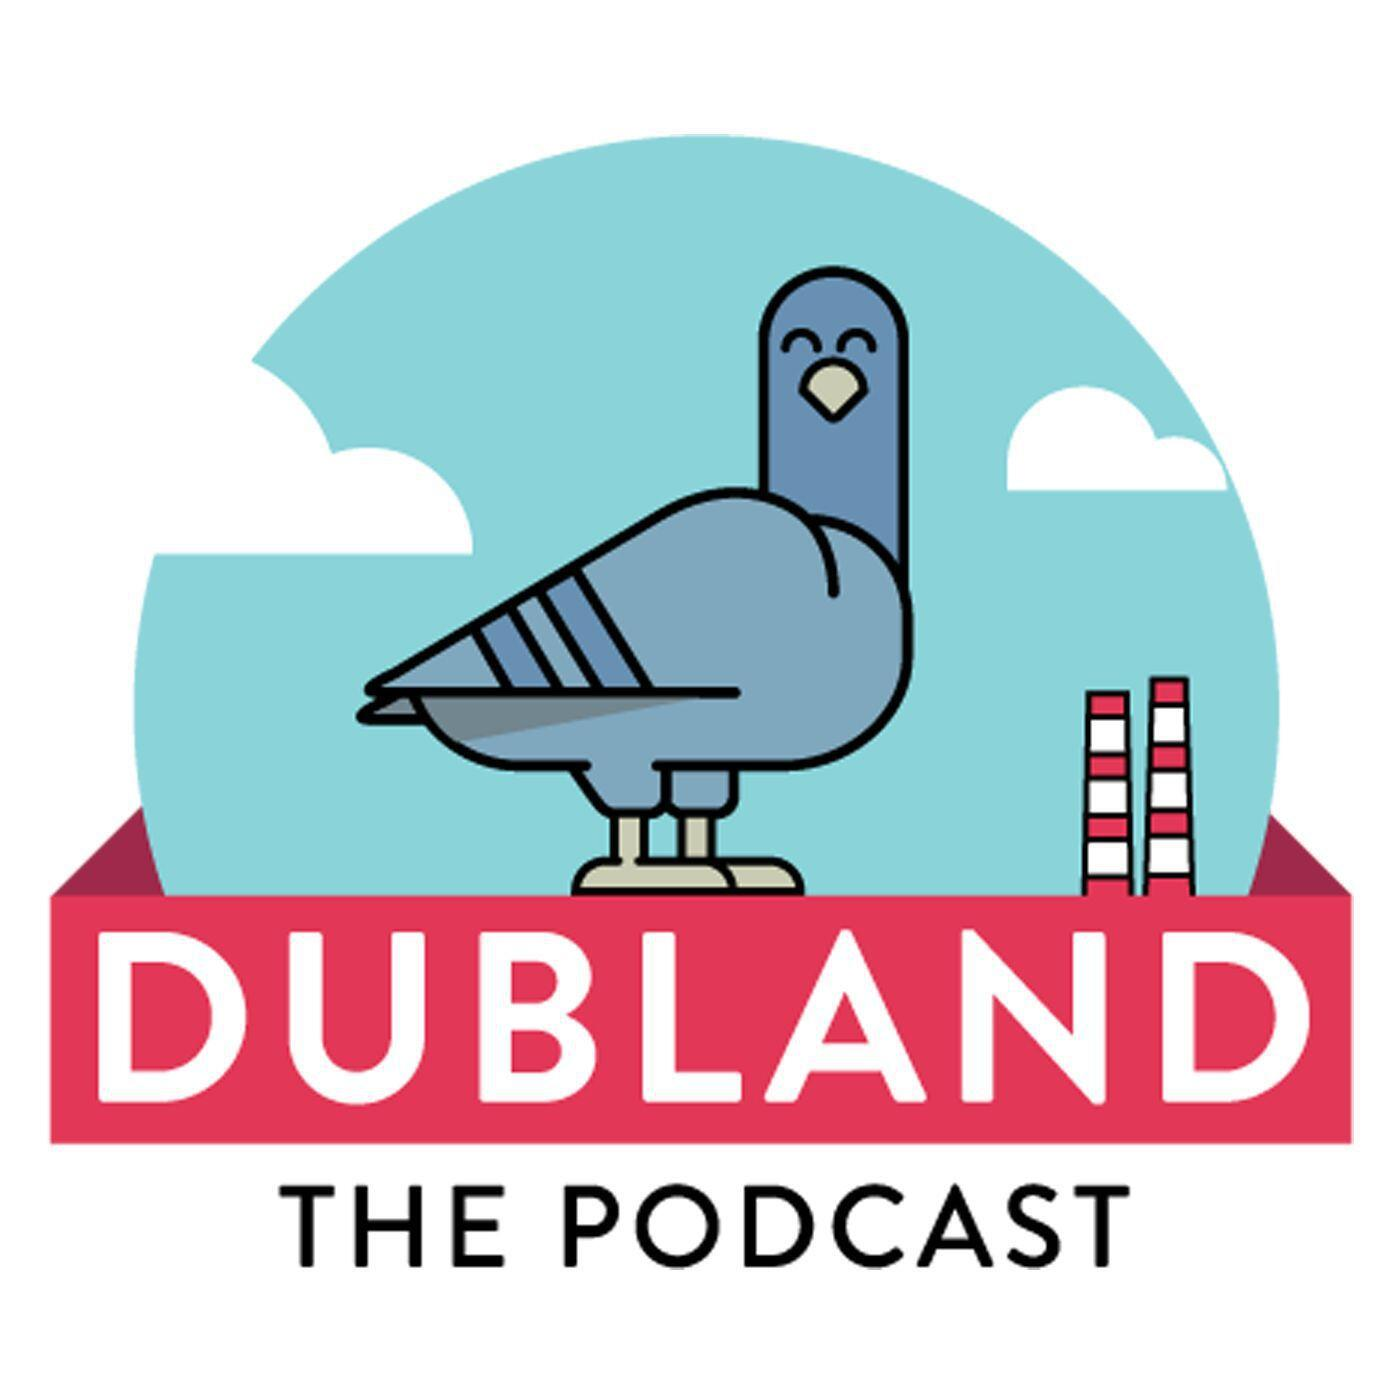 DUBLAND THE PODCAST EPISODE SIX